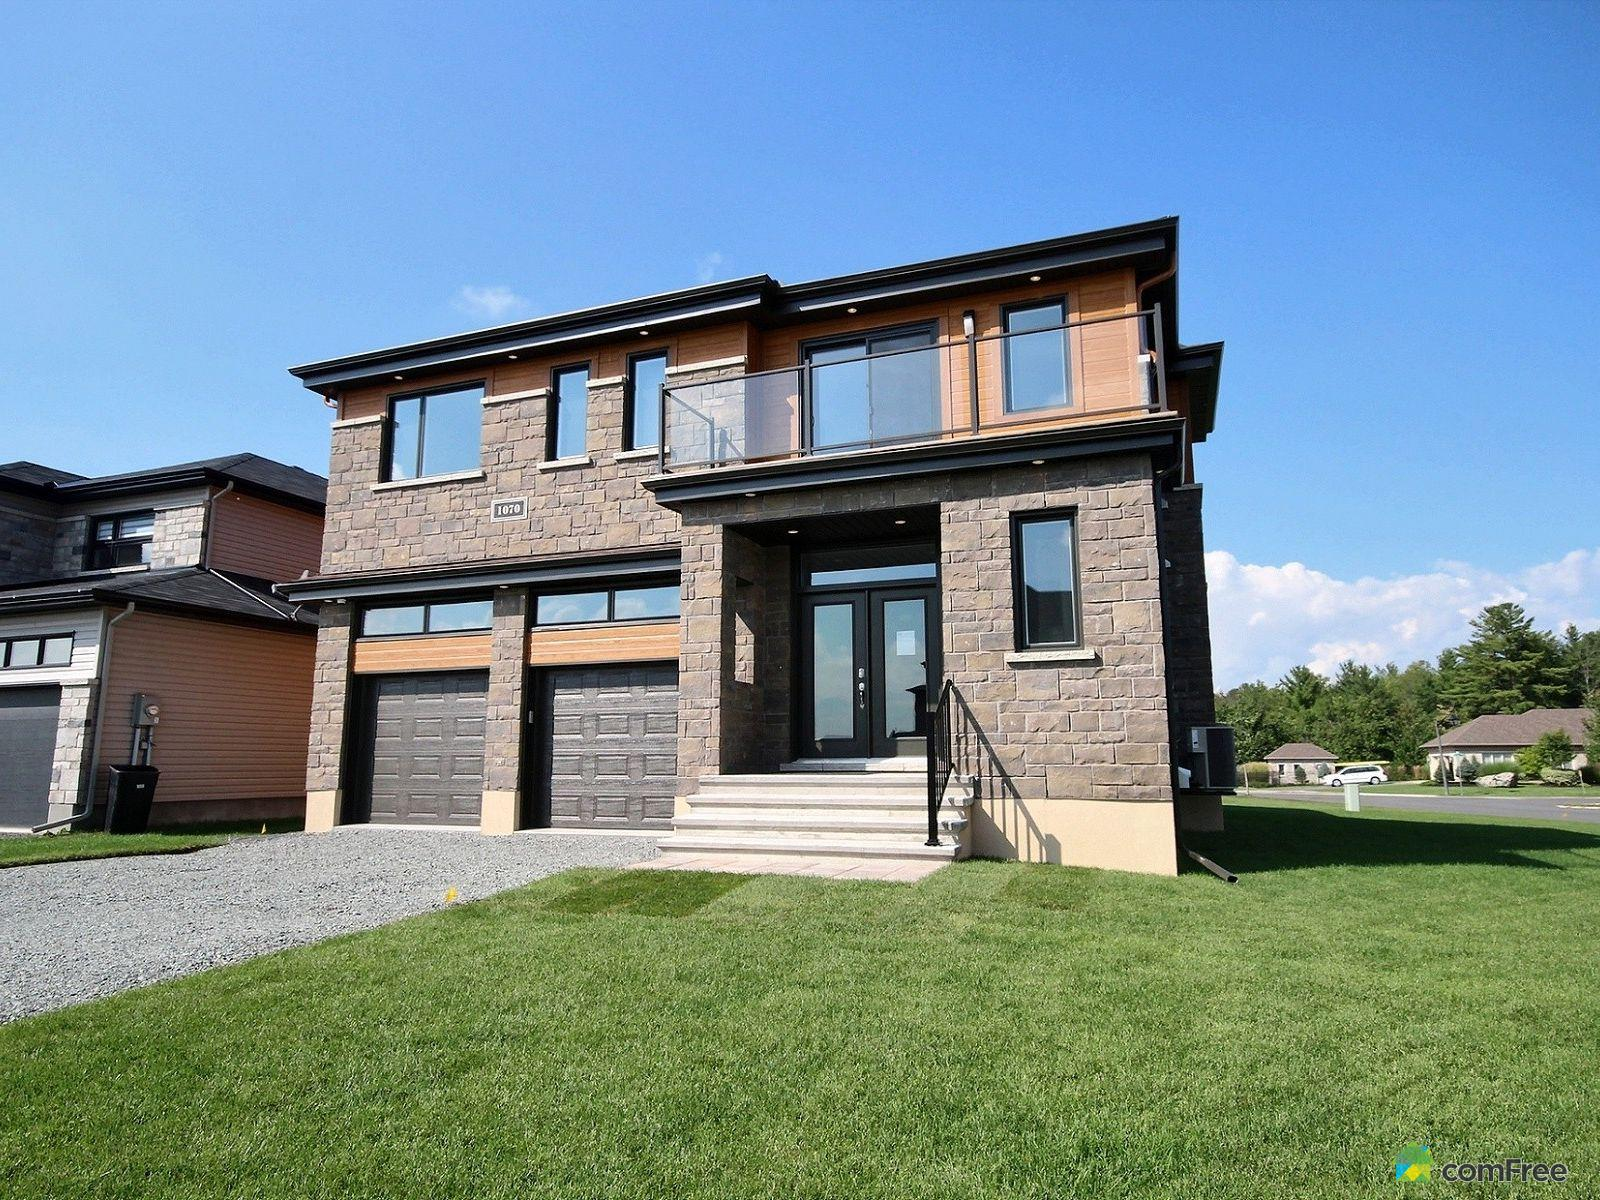 front-view-new-home-for-sale-rockland-ontario-1600-6609327.jpg